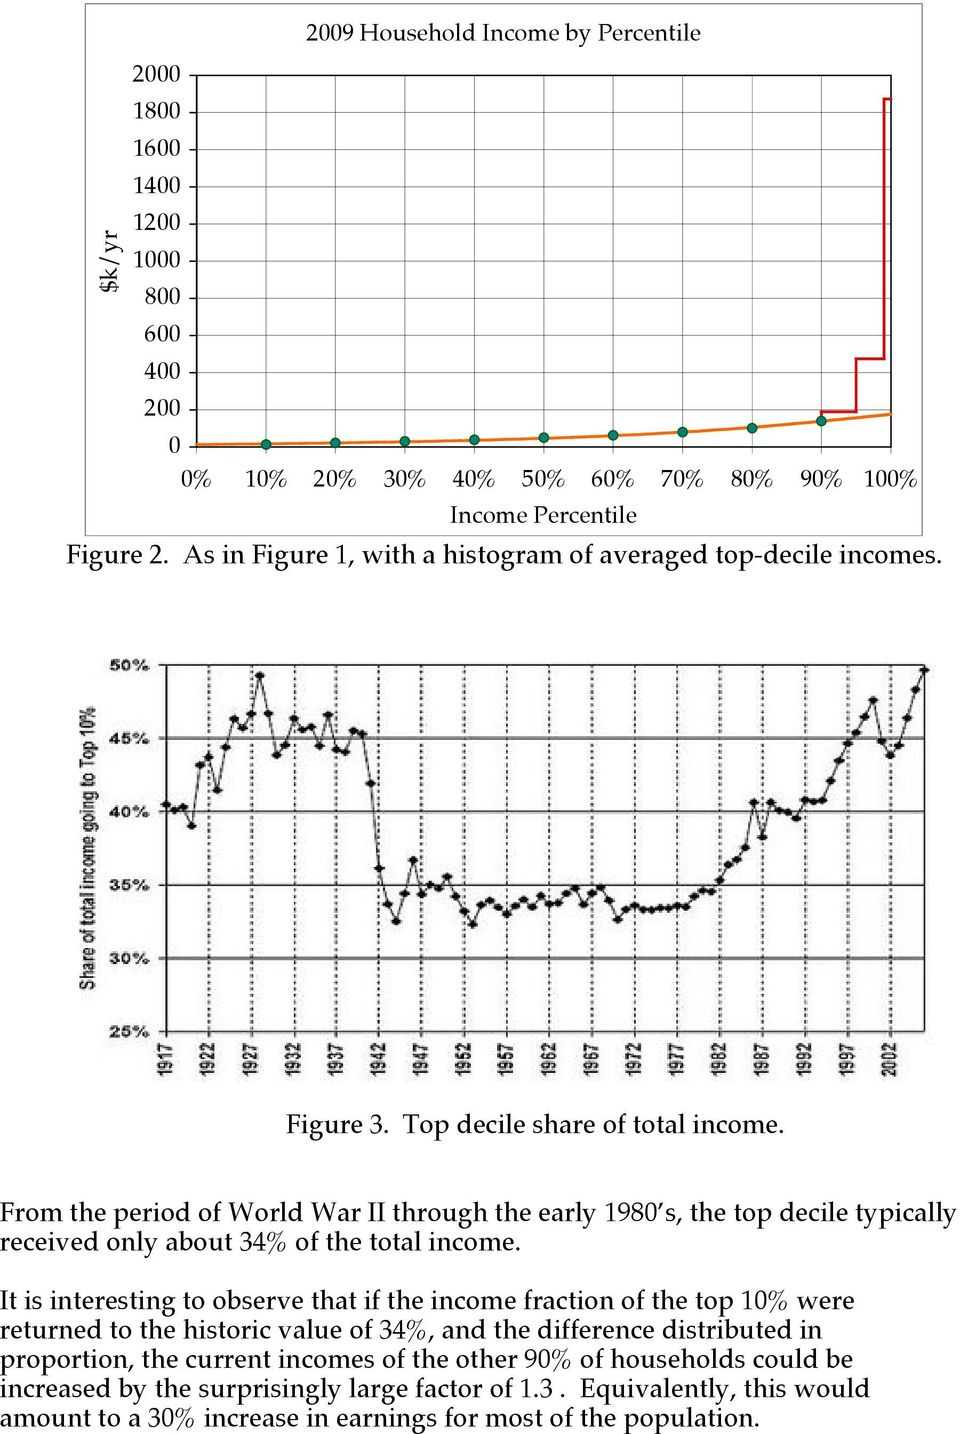 It is interesting to observe that if the income fraction of the top 1% were returned to the historic value of 34%, and the difference distributed in proportion, the